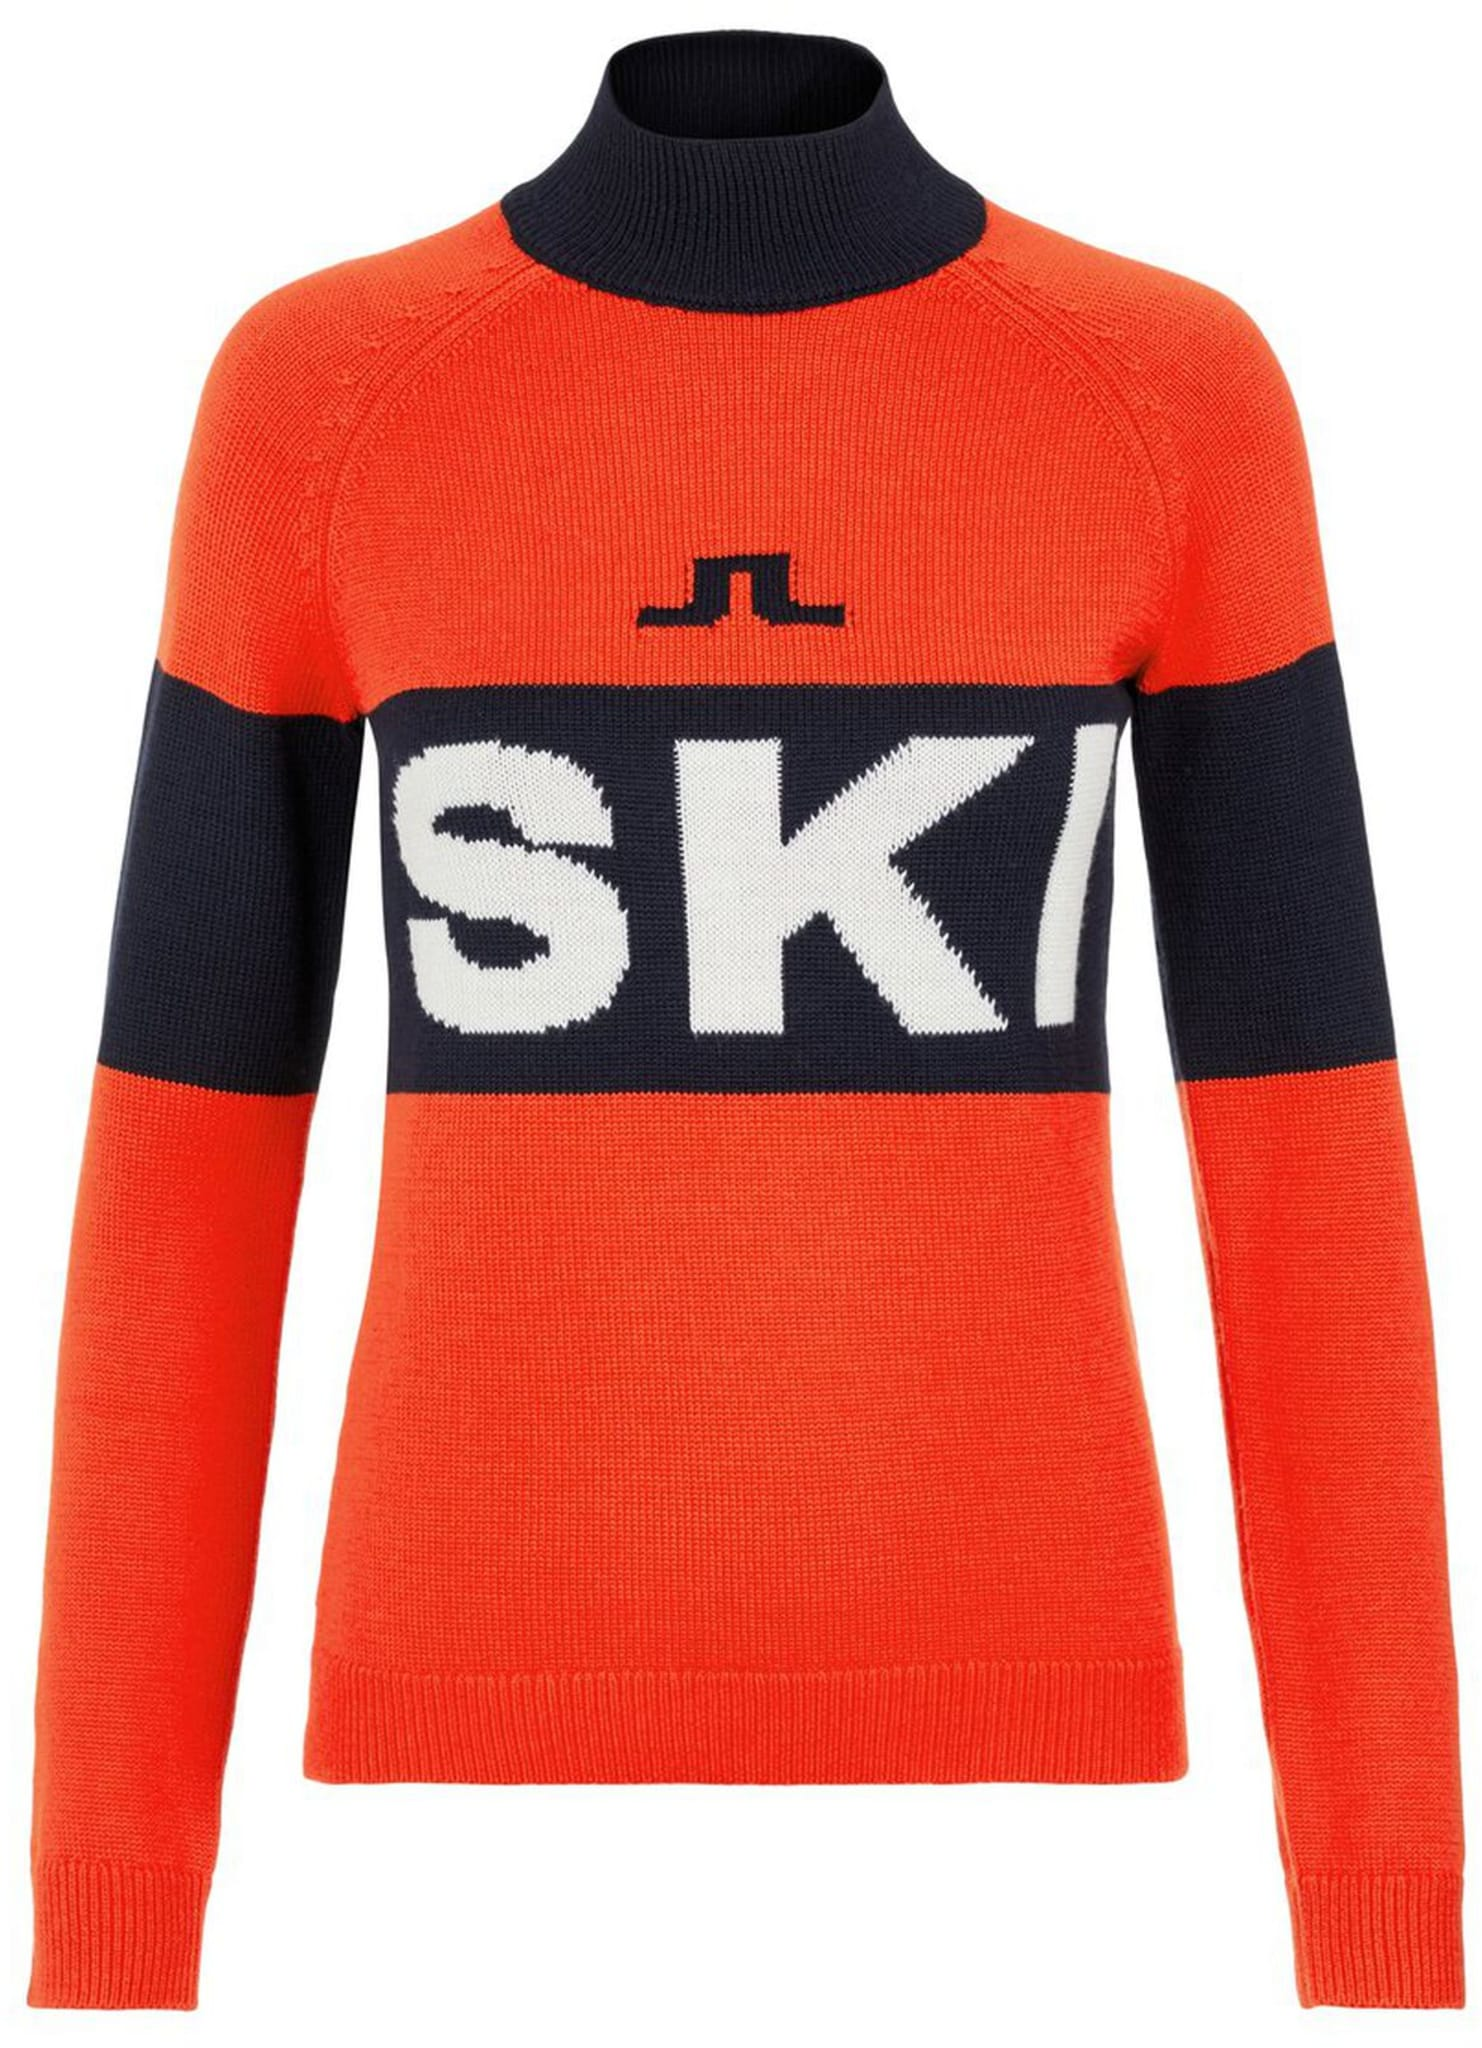 Alva Knitted Ski Sweater